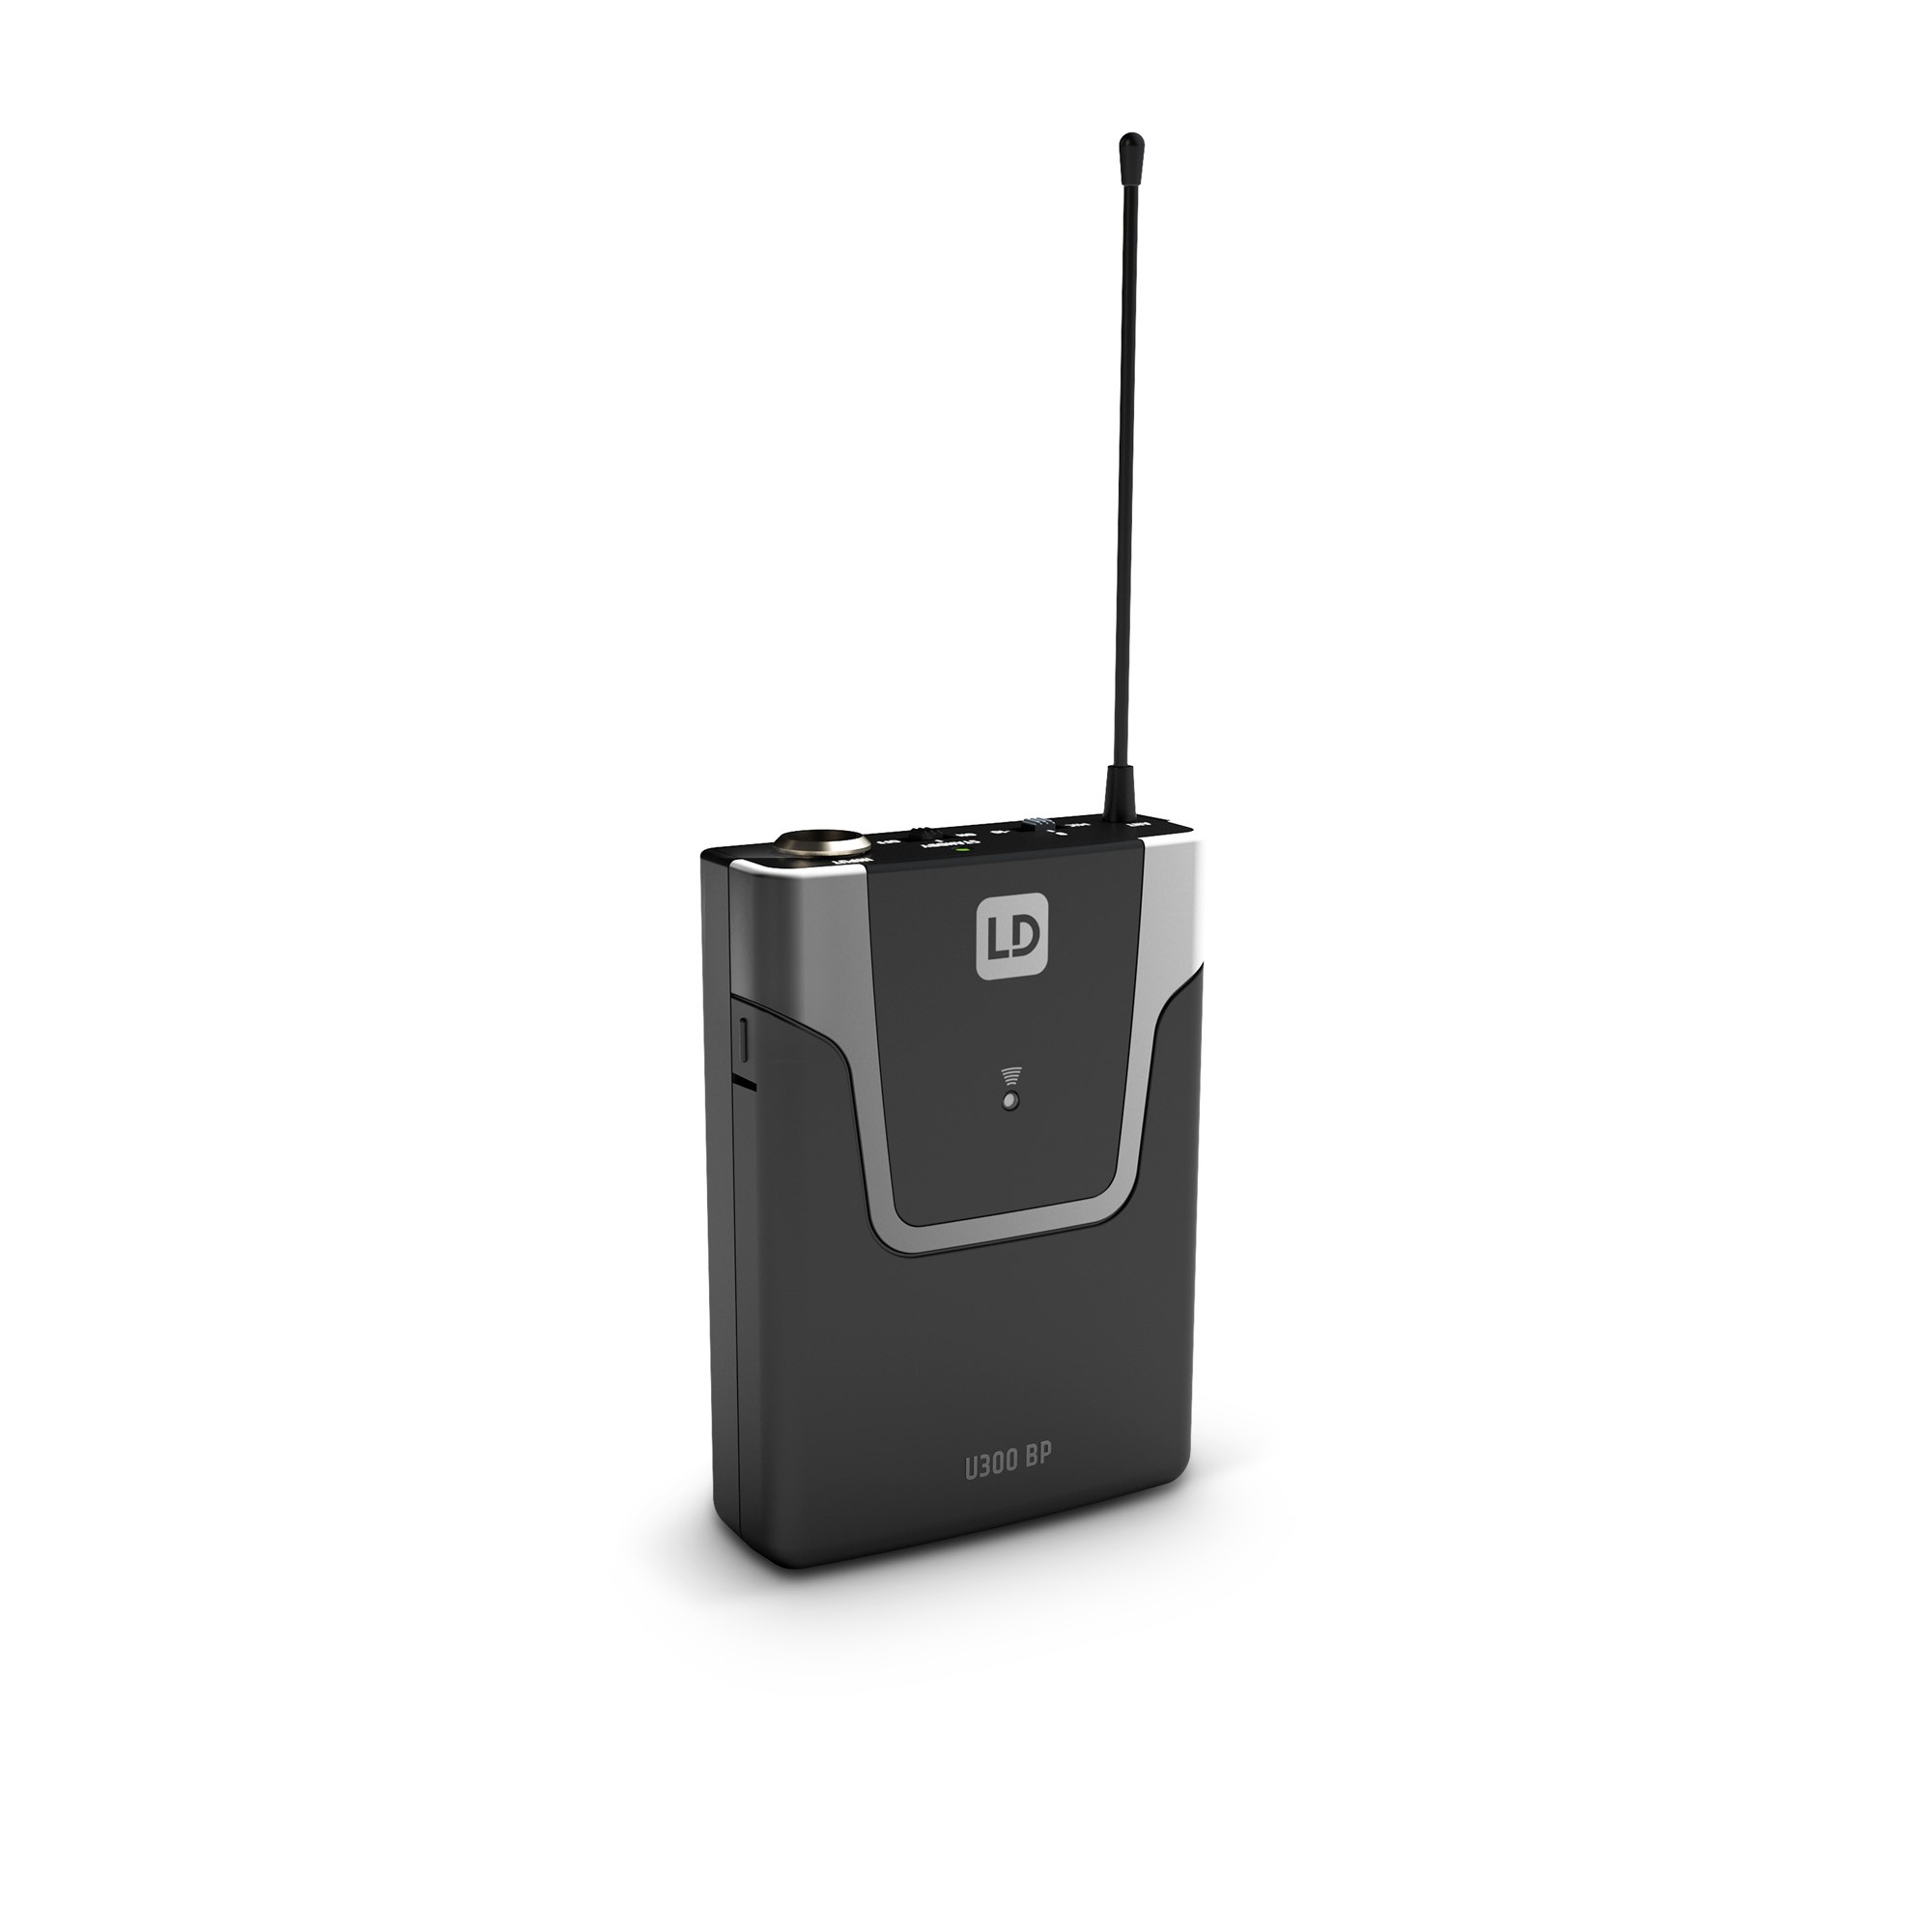 U305 BP Bodypack transmitter